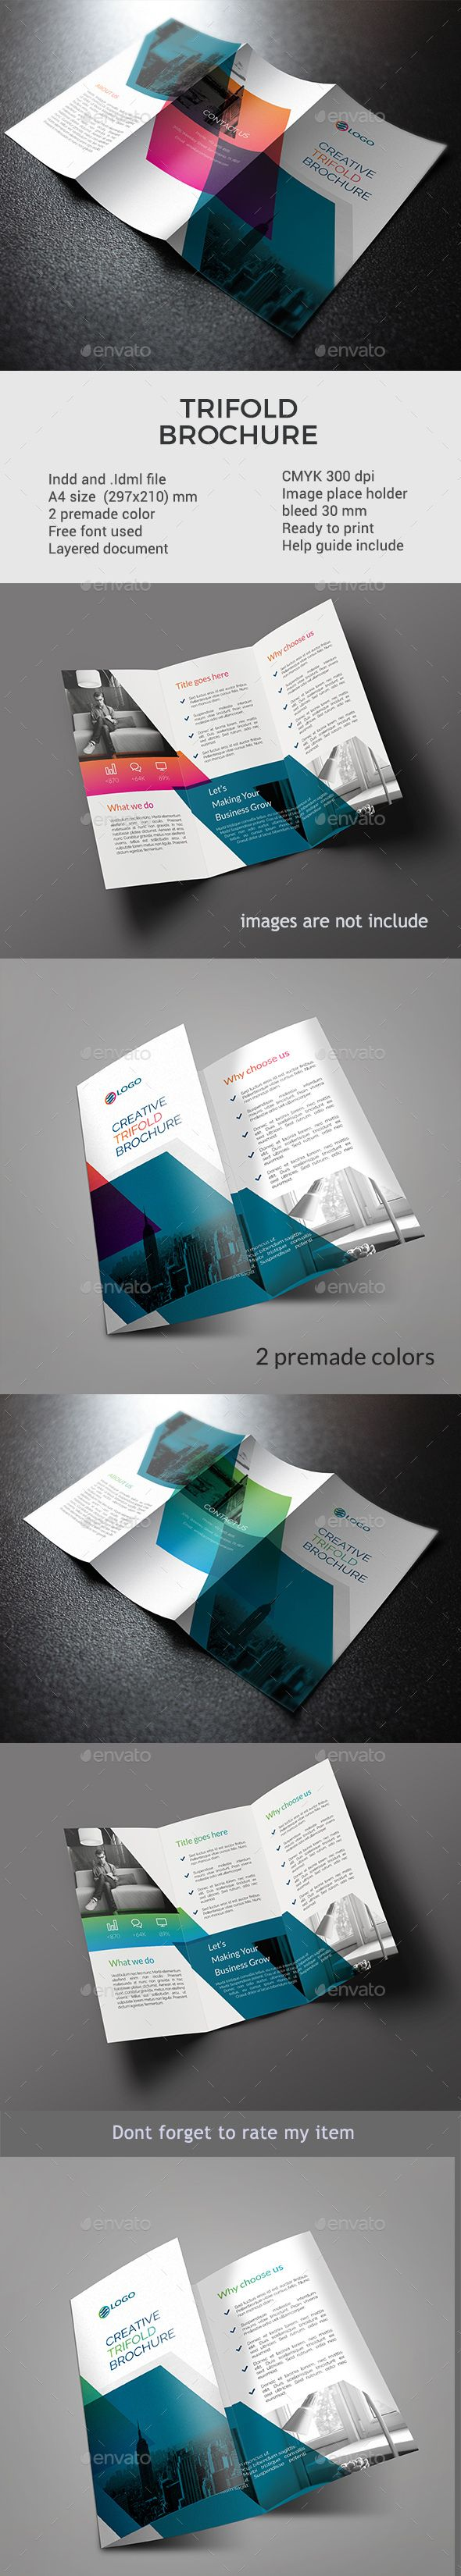 115 best trifold brochure templates designs images on pinterest trifold brochure magicingreecefo Image collections